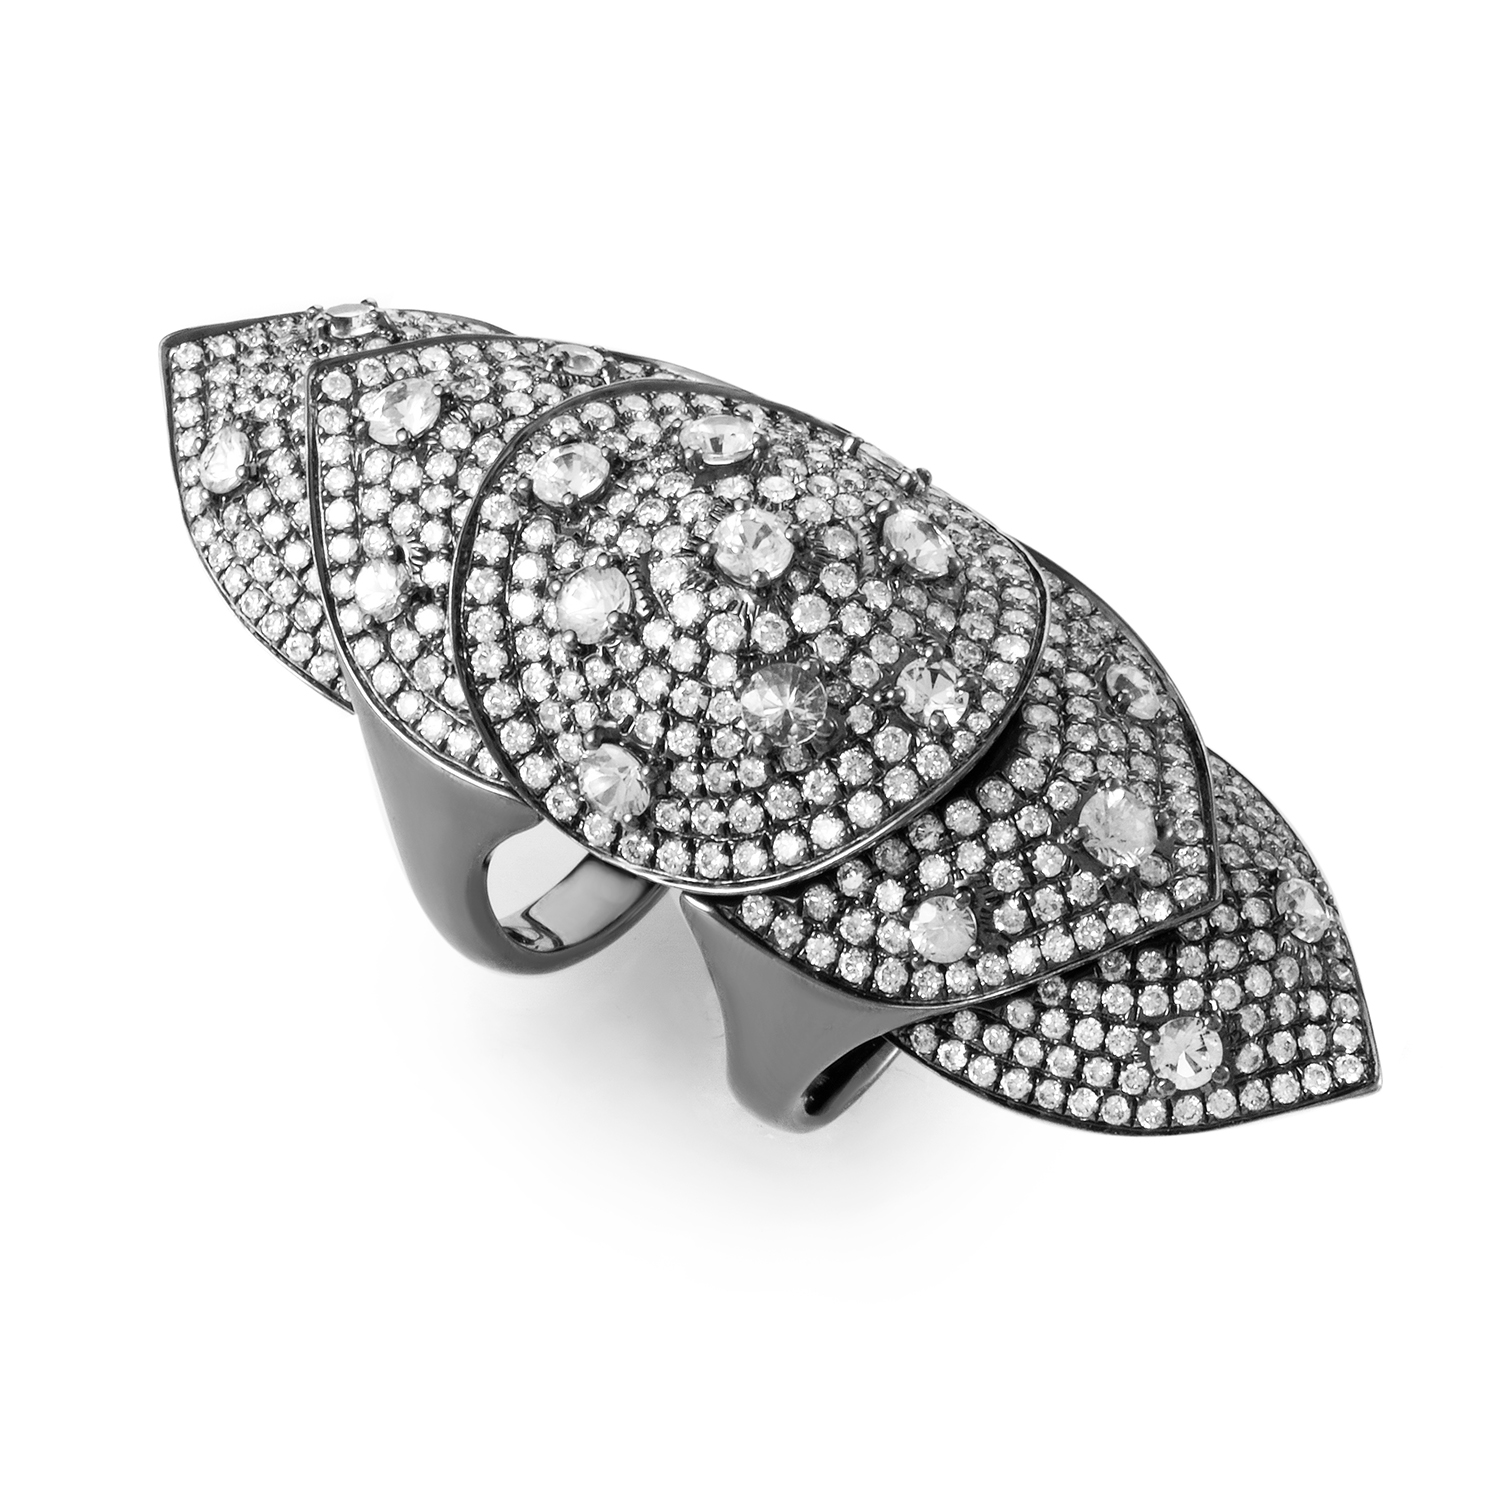 18K White Gold & Diamond Full-Finger Ring R14746-9